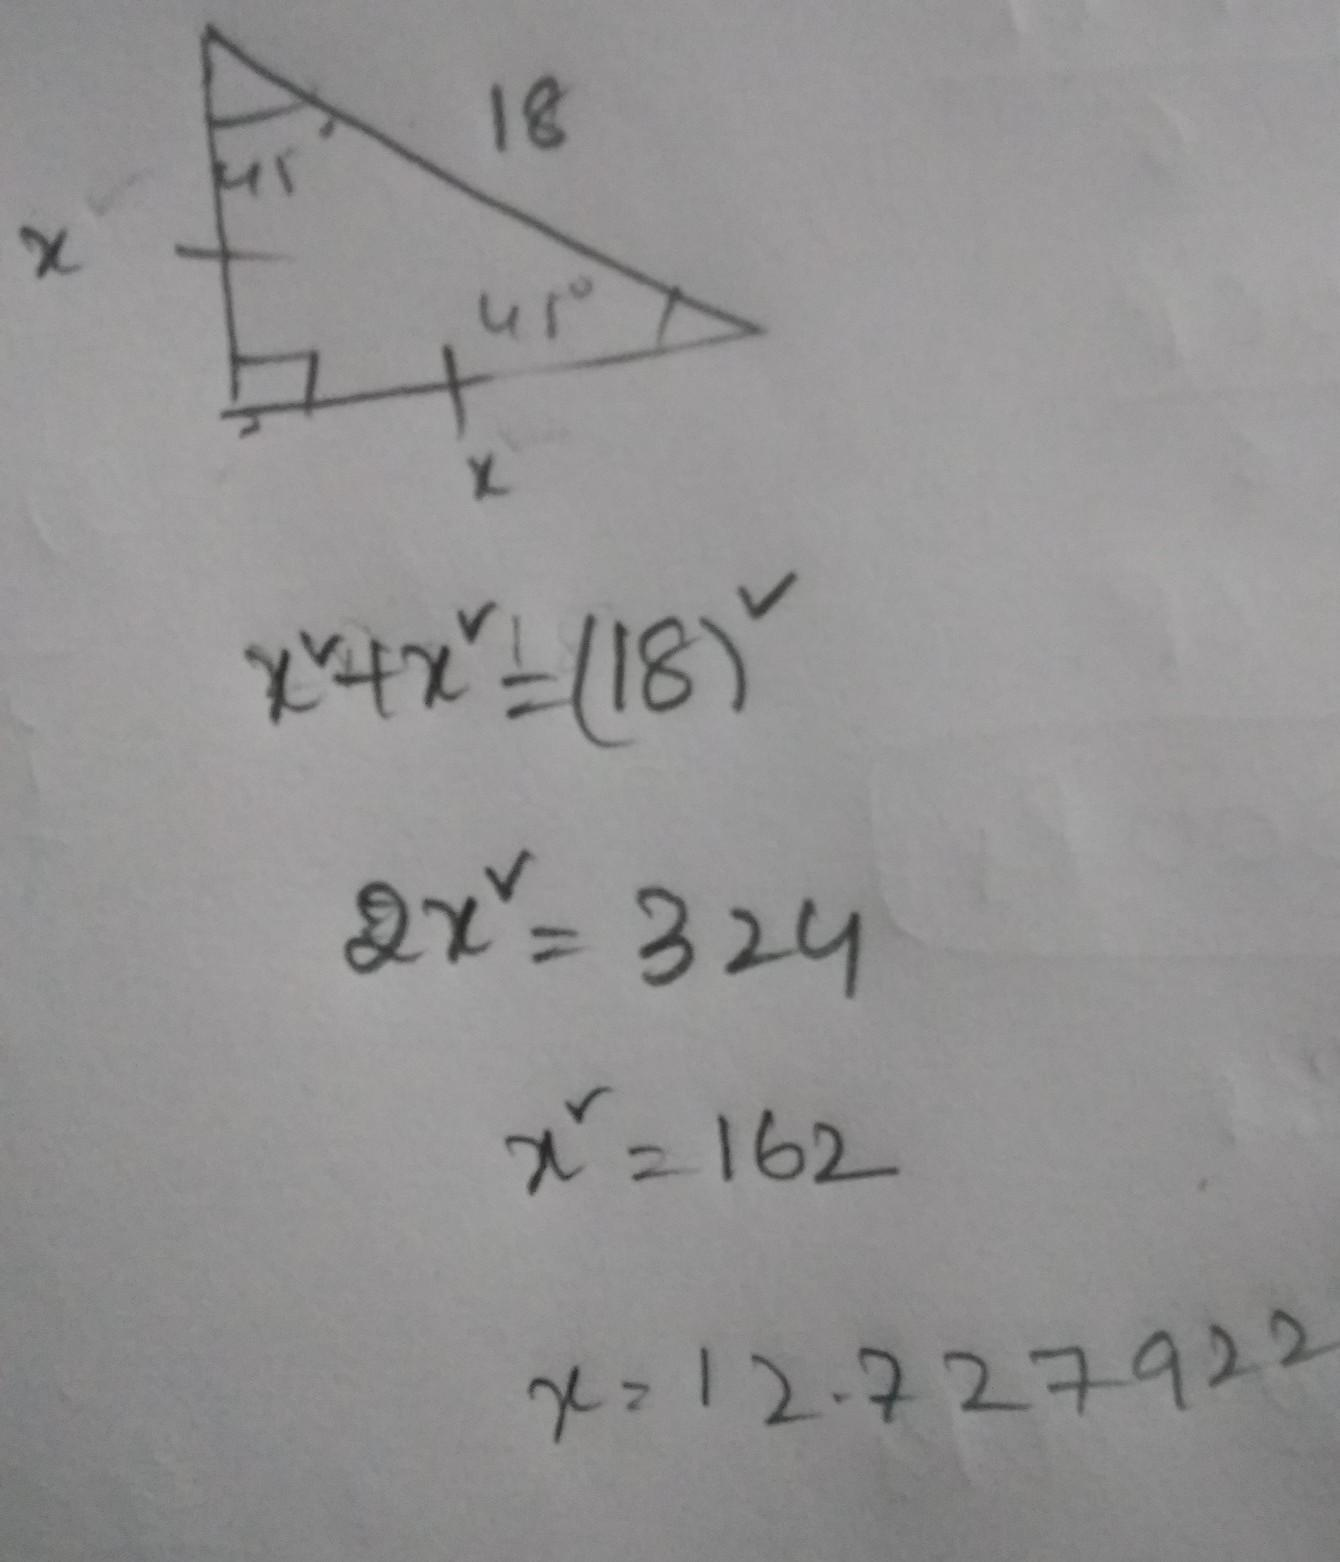 The Hypotenuse Of A 45 45 And 90 Triangle Measures 18 Cm